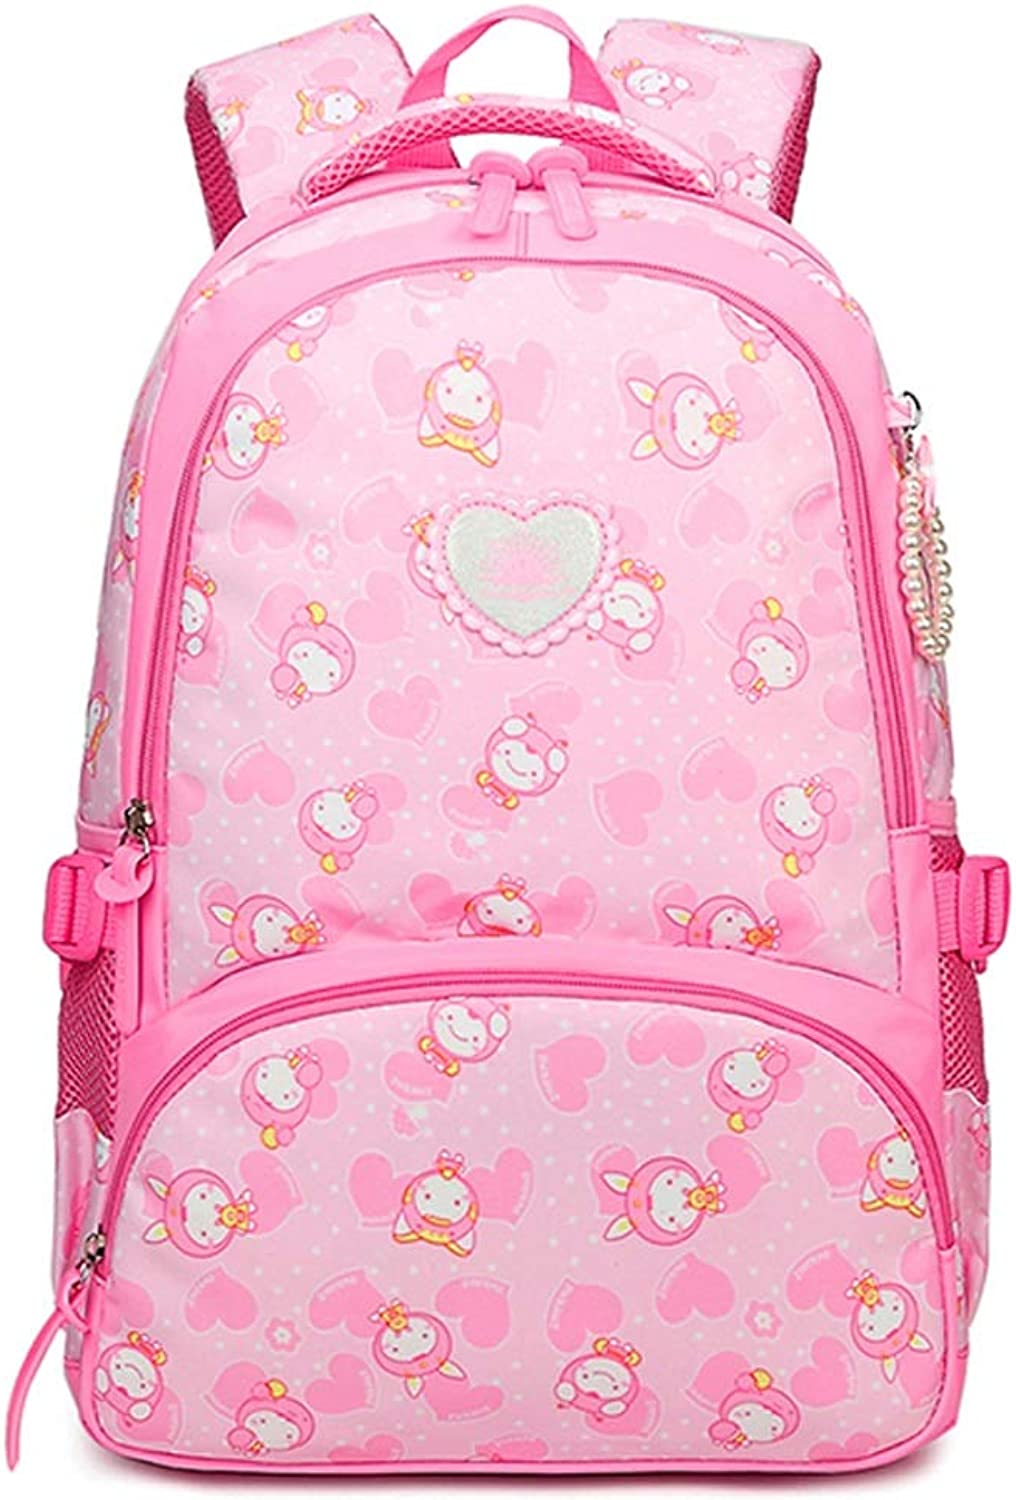 Backpack  Waterproof Bag Durable Travel Camping Backpack Boy and Girl Pink School Backpack Girl Bag (color   B)